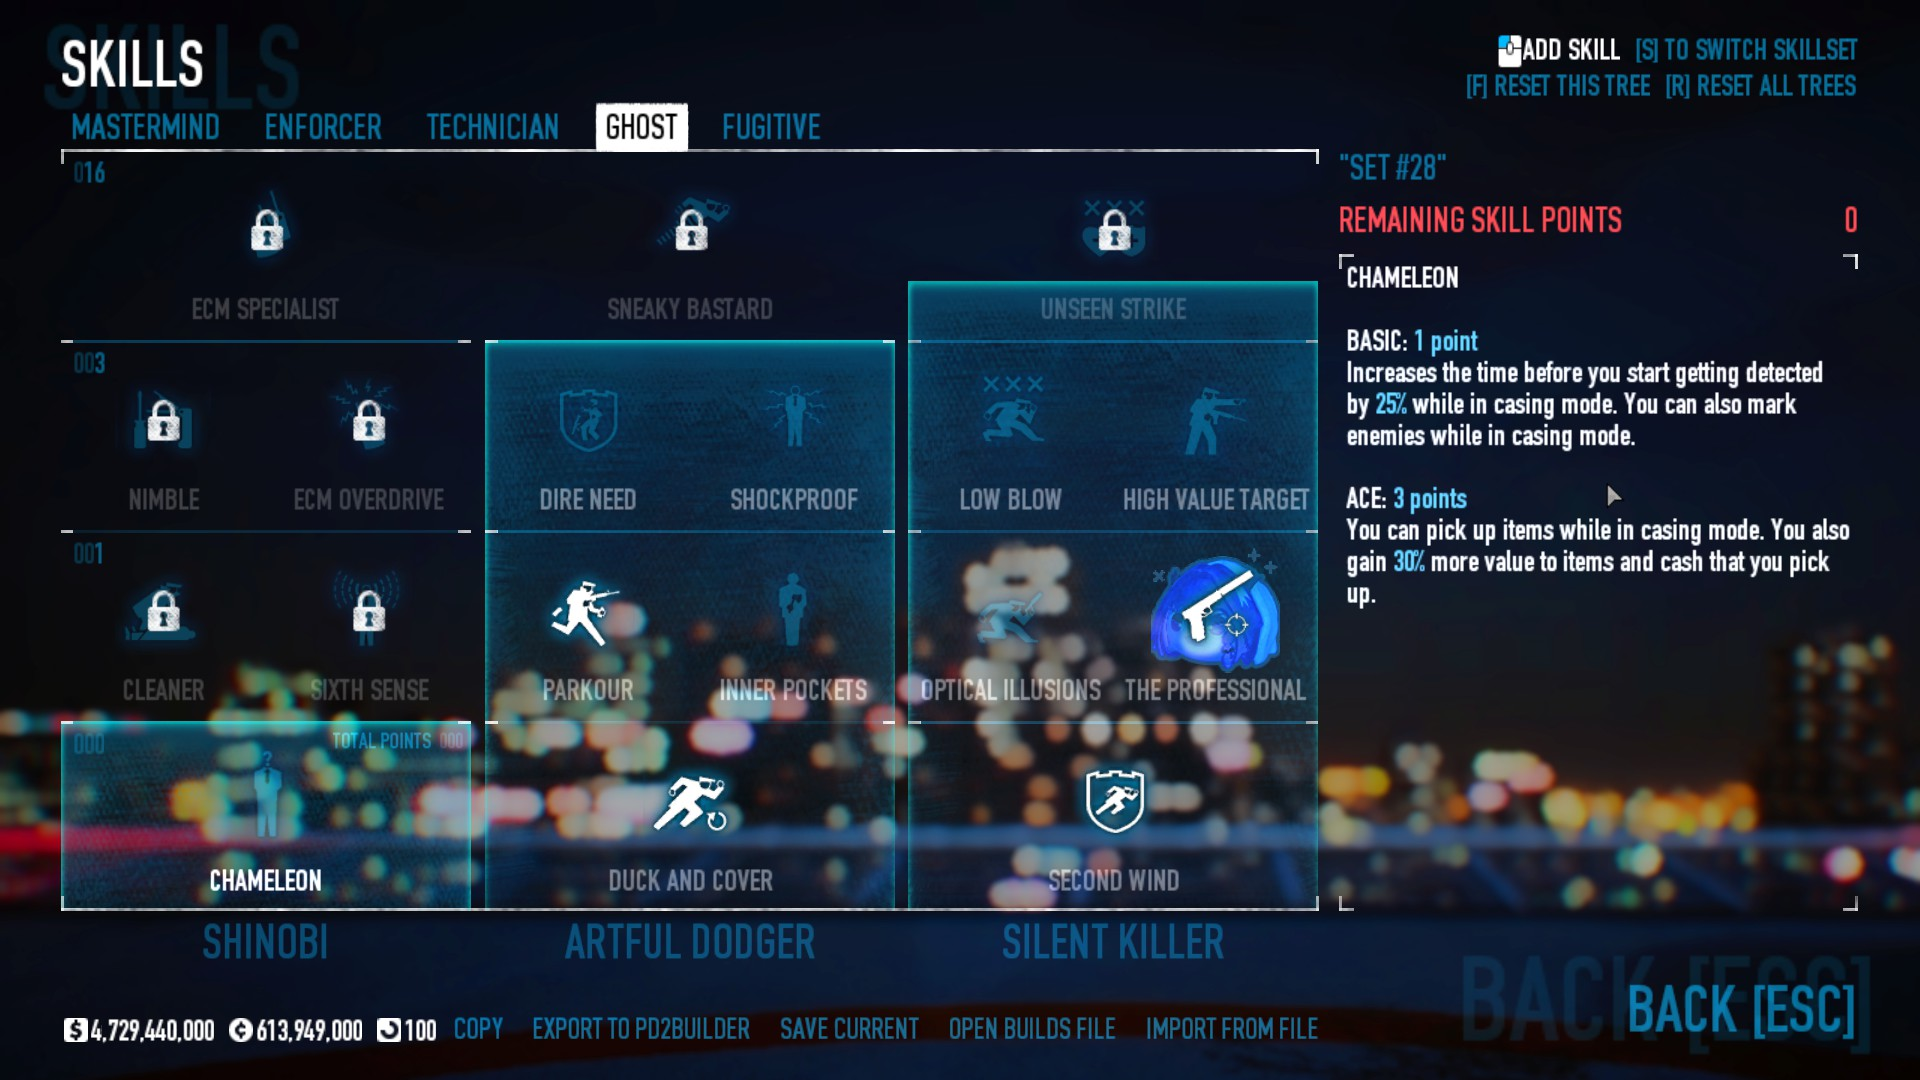 PAYDAY 2 - DSOD No DLC Build + Weapons Attachments & Class - Ghost Skills - 531B60E